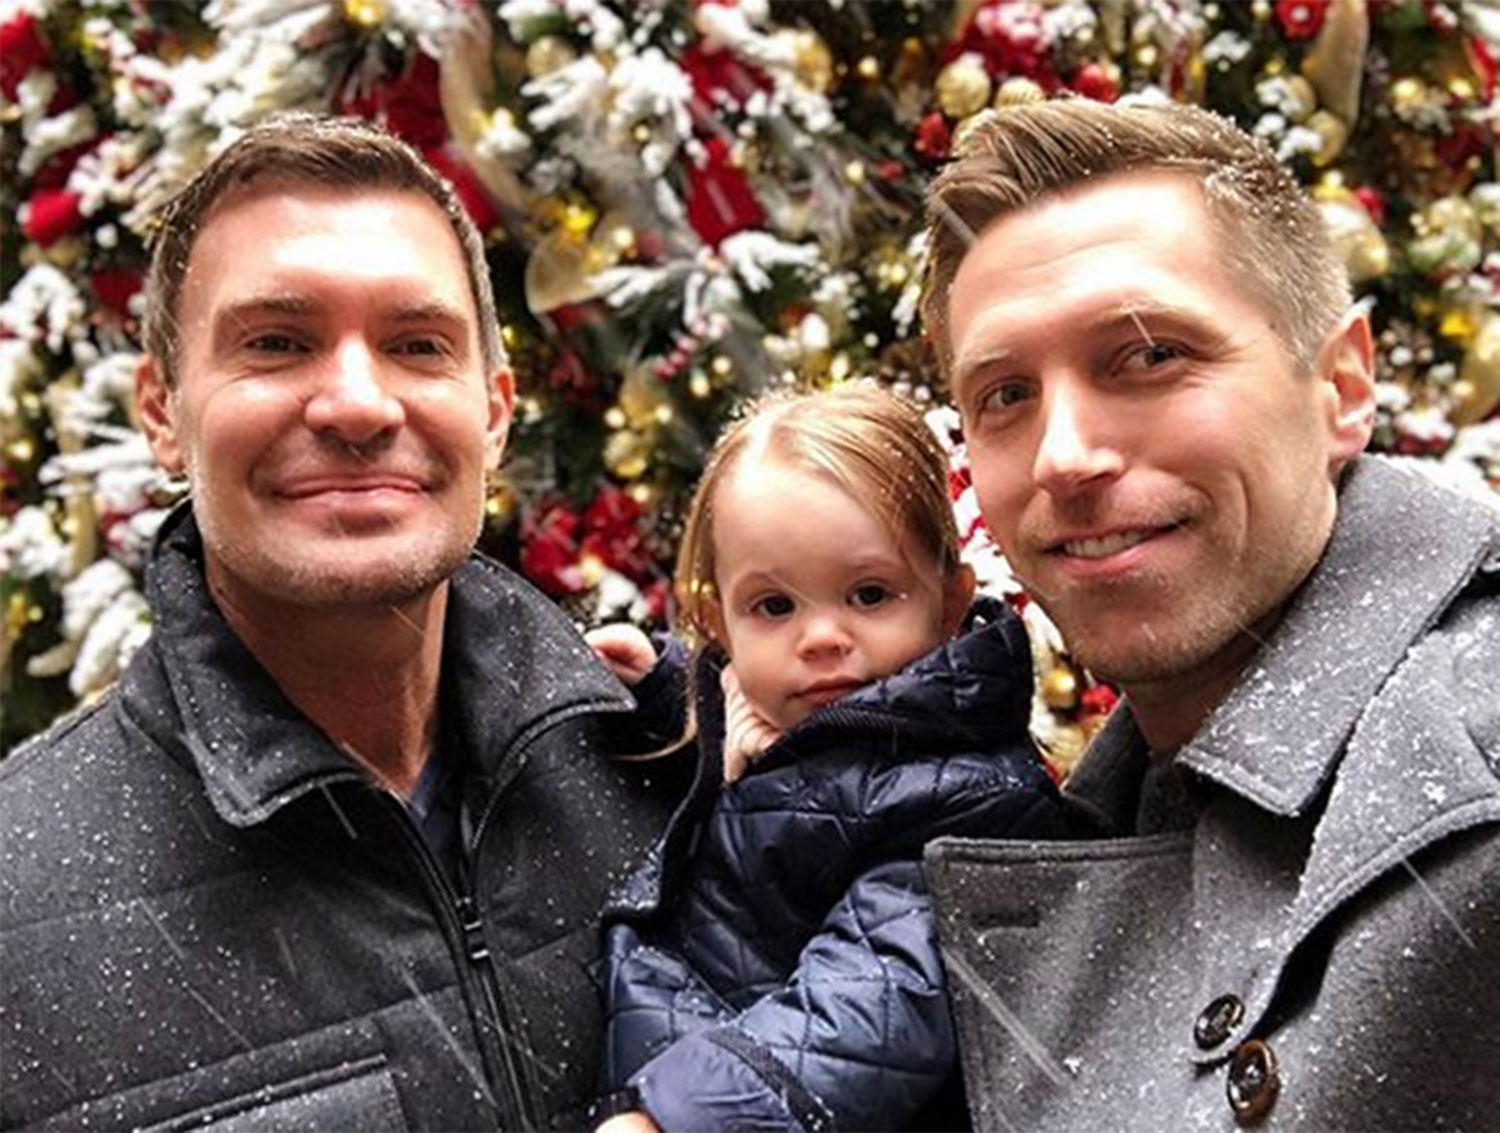 Jeff Lewis Says Daughter Is 'Biologically My Child' as He Rails Against 50/50 Custody Proposal